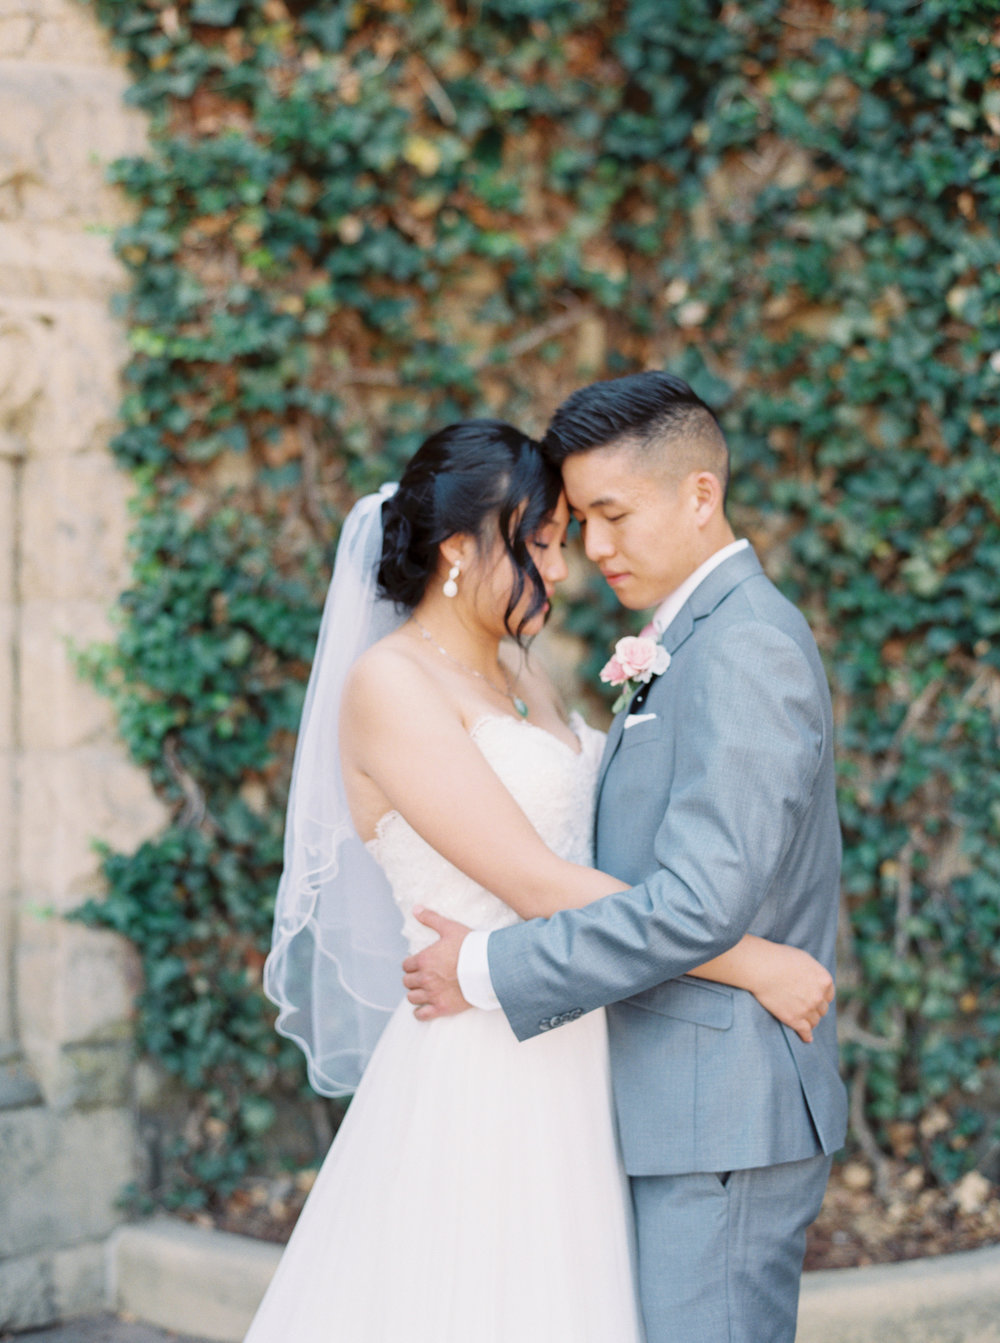 trynhphoto_wedding_photography_Standford_PaloAlto_SF_BayArea_Destination_OC_HA-45.jpg